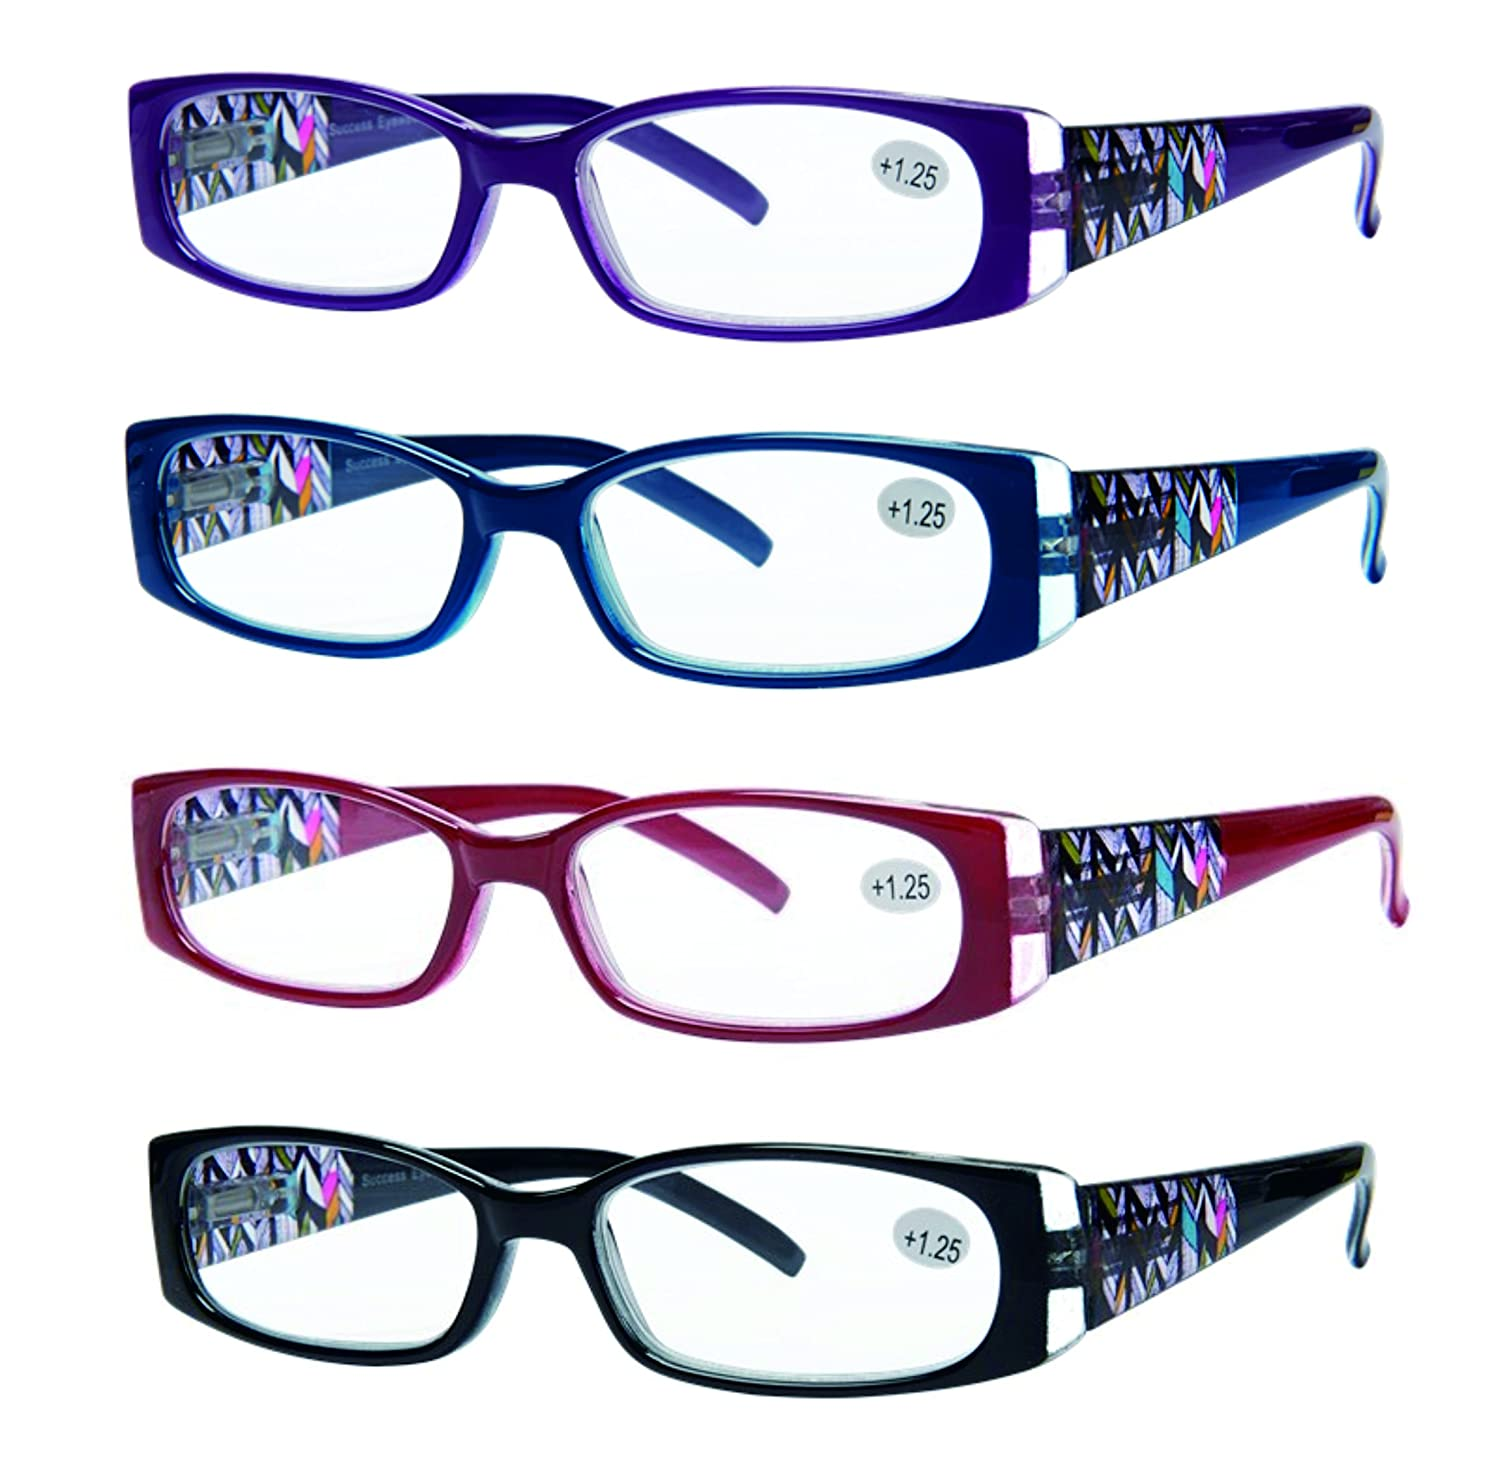 Amazon.com: READING GLASSES 4 Pack Quality Readers Spring Hinge ...